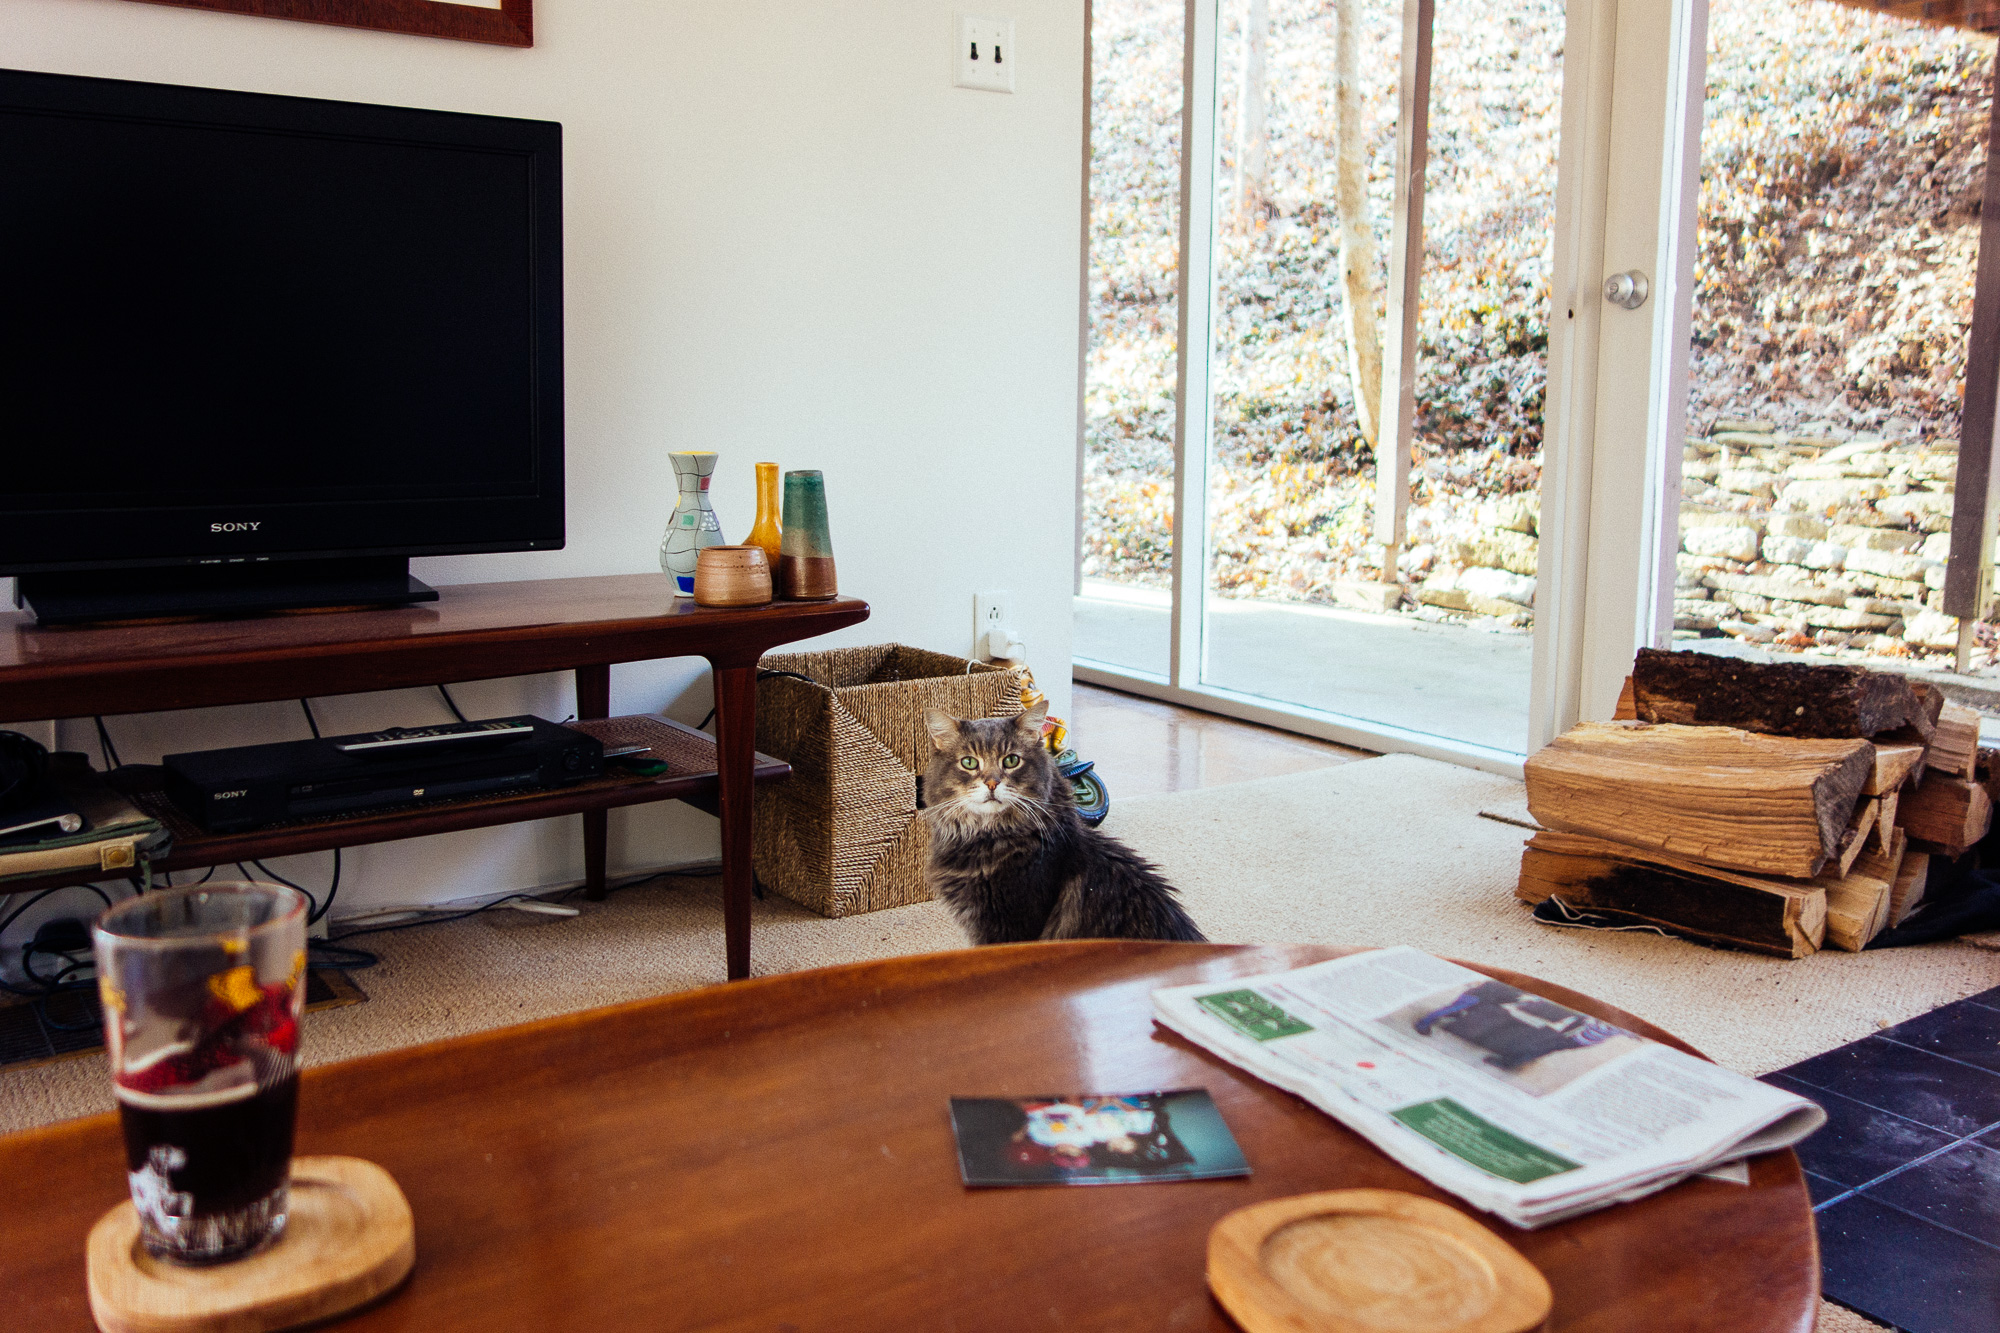 A kitty cat in a living room